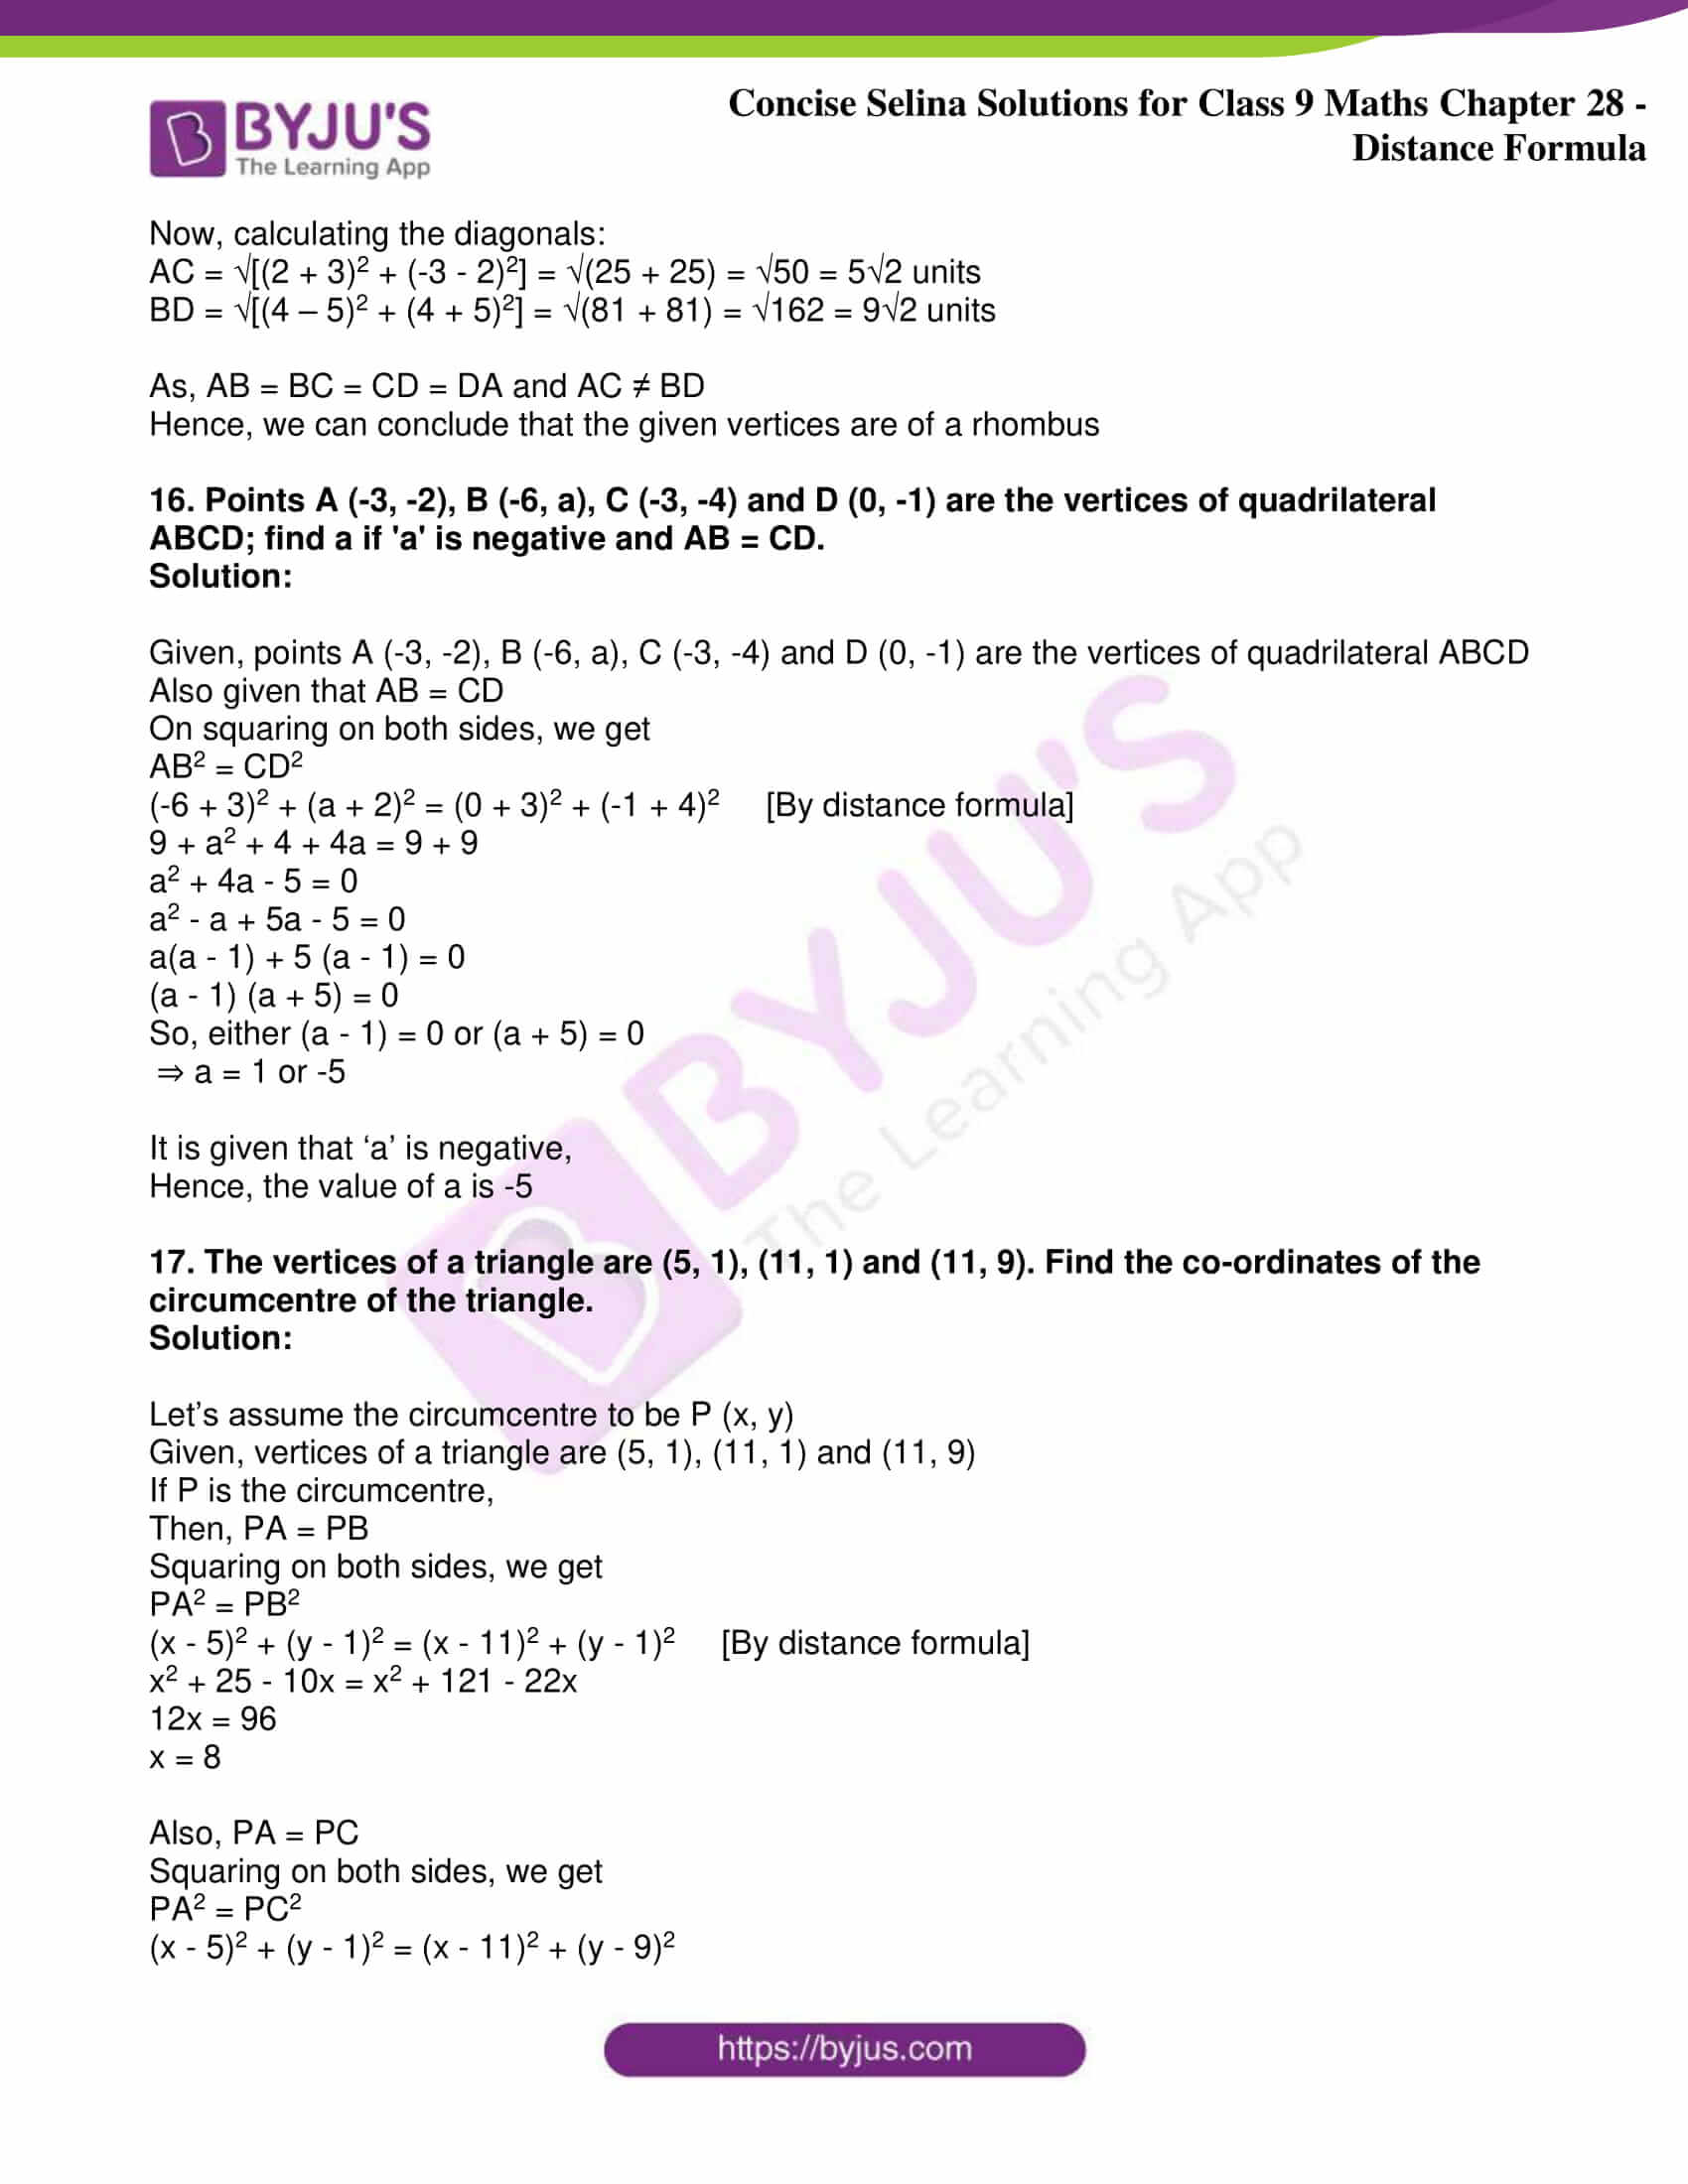 icse class 9 maths may10 selina solutions chapter 28 distance formula 08